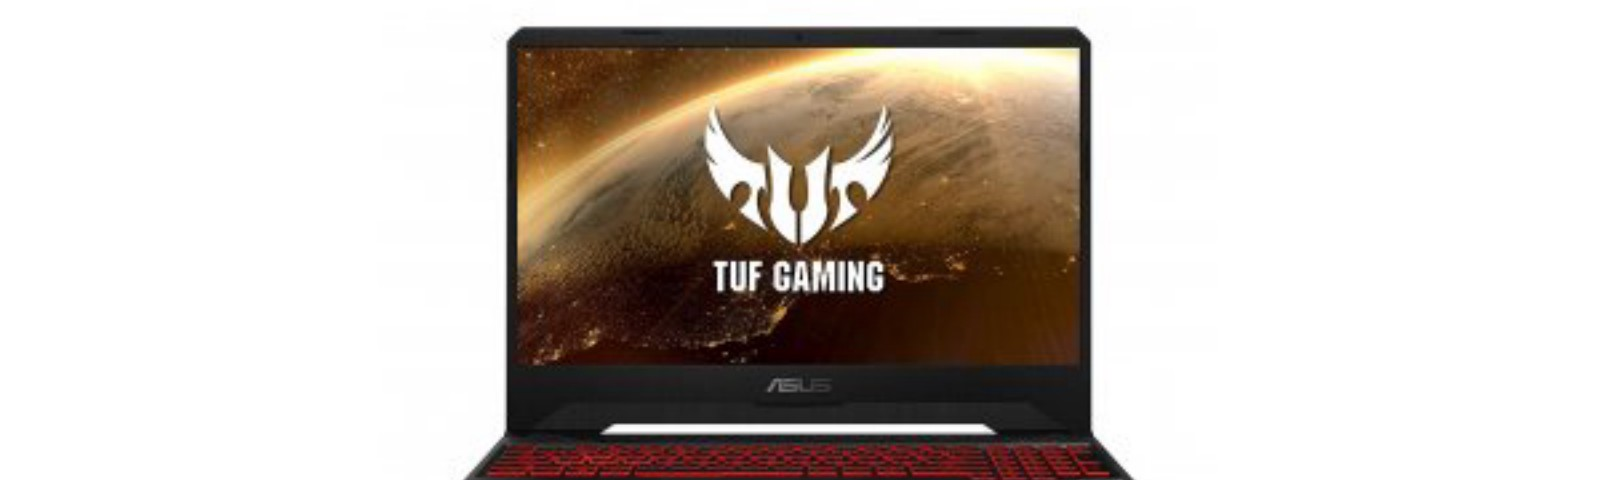 Best Gaming Laptops Under 50000 In India June 2020 By Kunal Rathor Medium